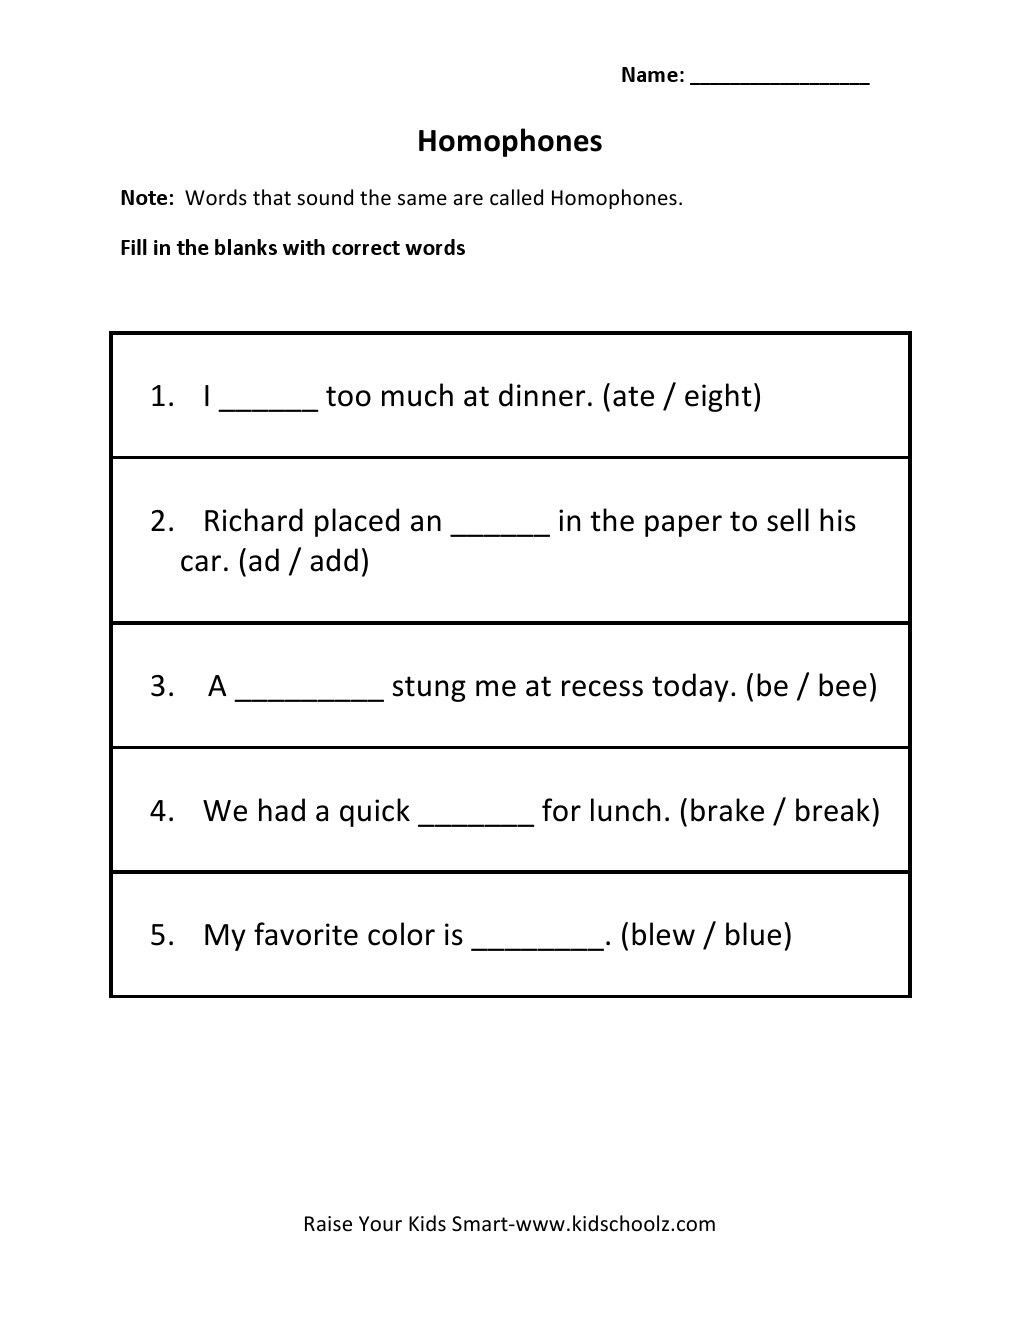 Homophones Worksheets 4th Grade Wp Content 2014 09 Homophones 1